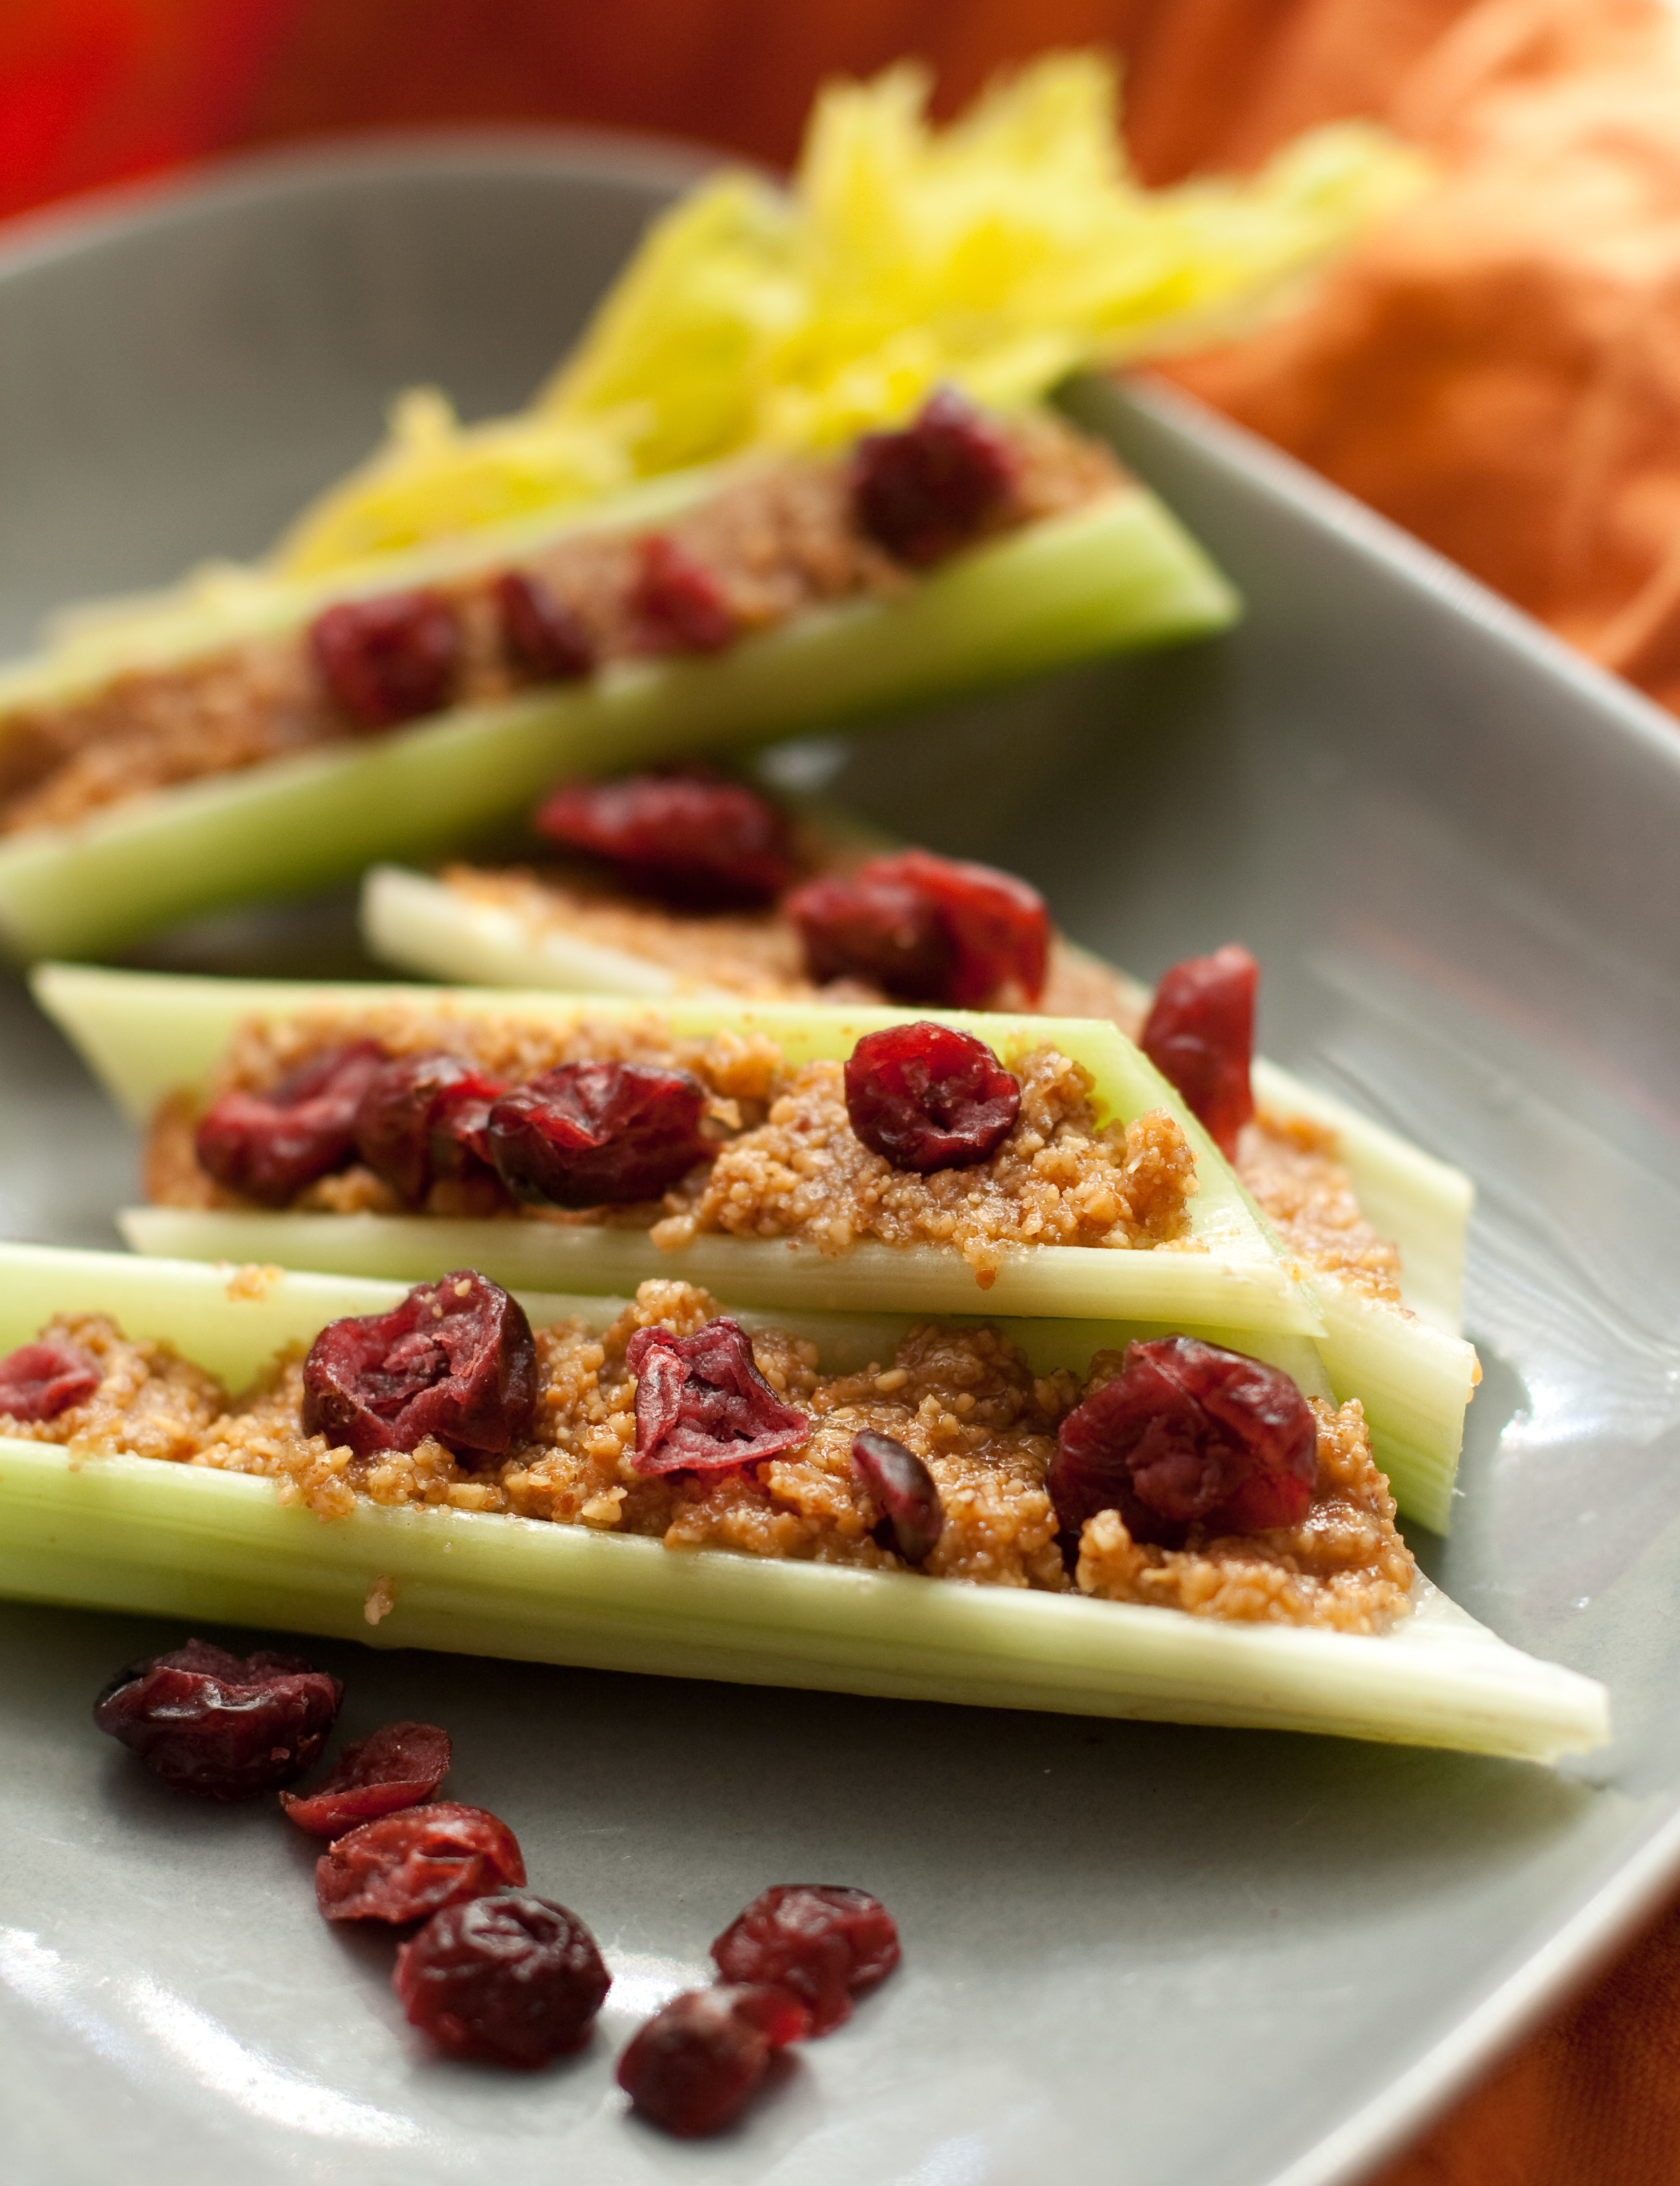 Celery with peanut butter and raisins.